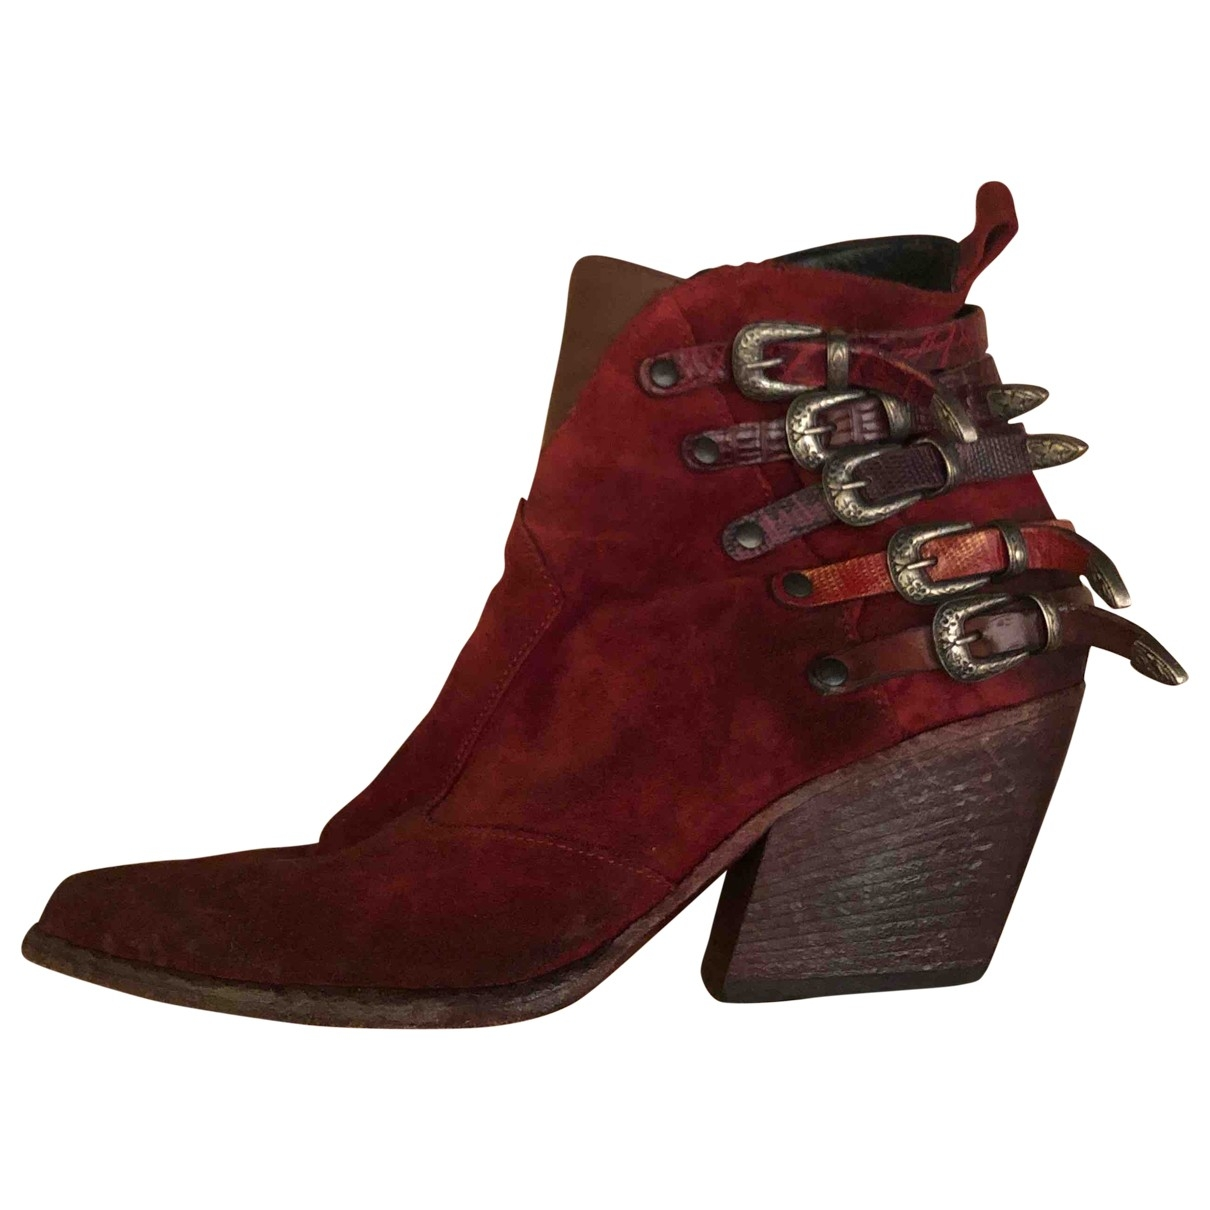 Elena Iachi \N Red Leather Ankle boots for Women 38 EU